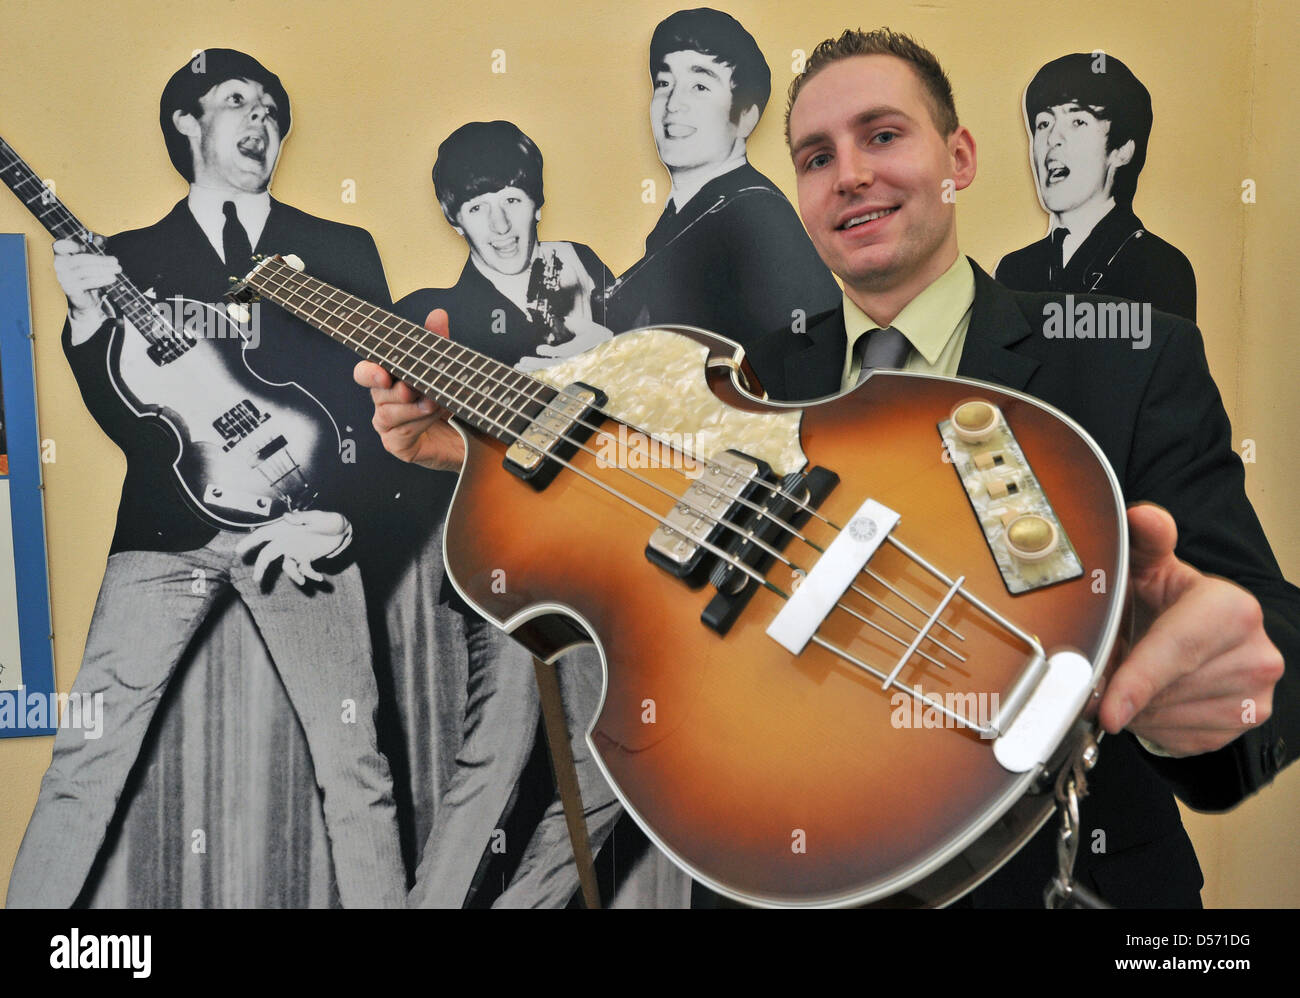 Martin Schmidt Director Of Beatles Museum Halle Saale Presents A Hofner Bass That Paul McCartney Used To Play In Germany 16 March 2010